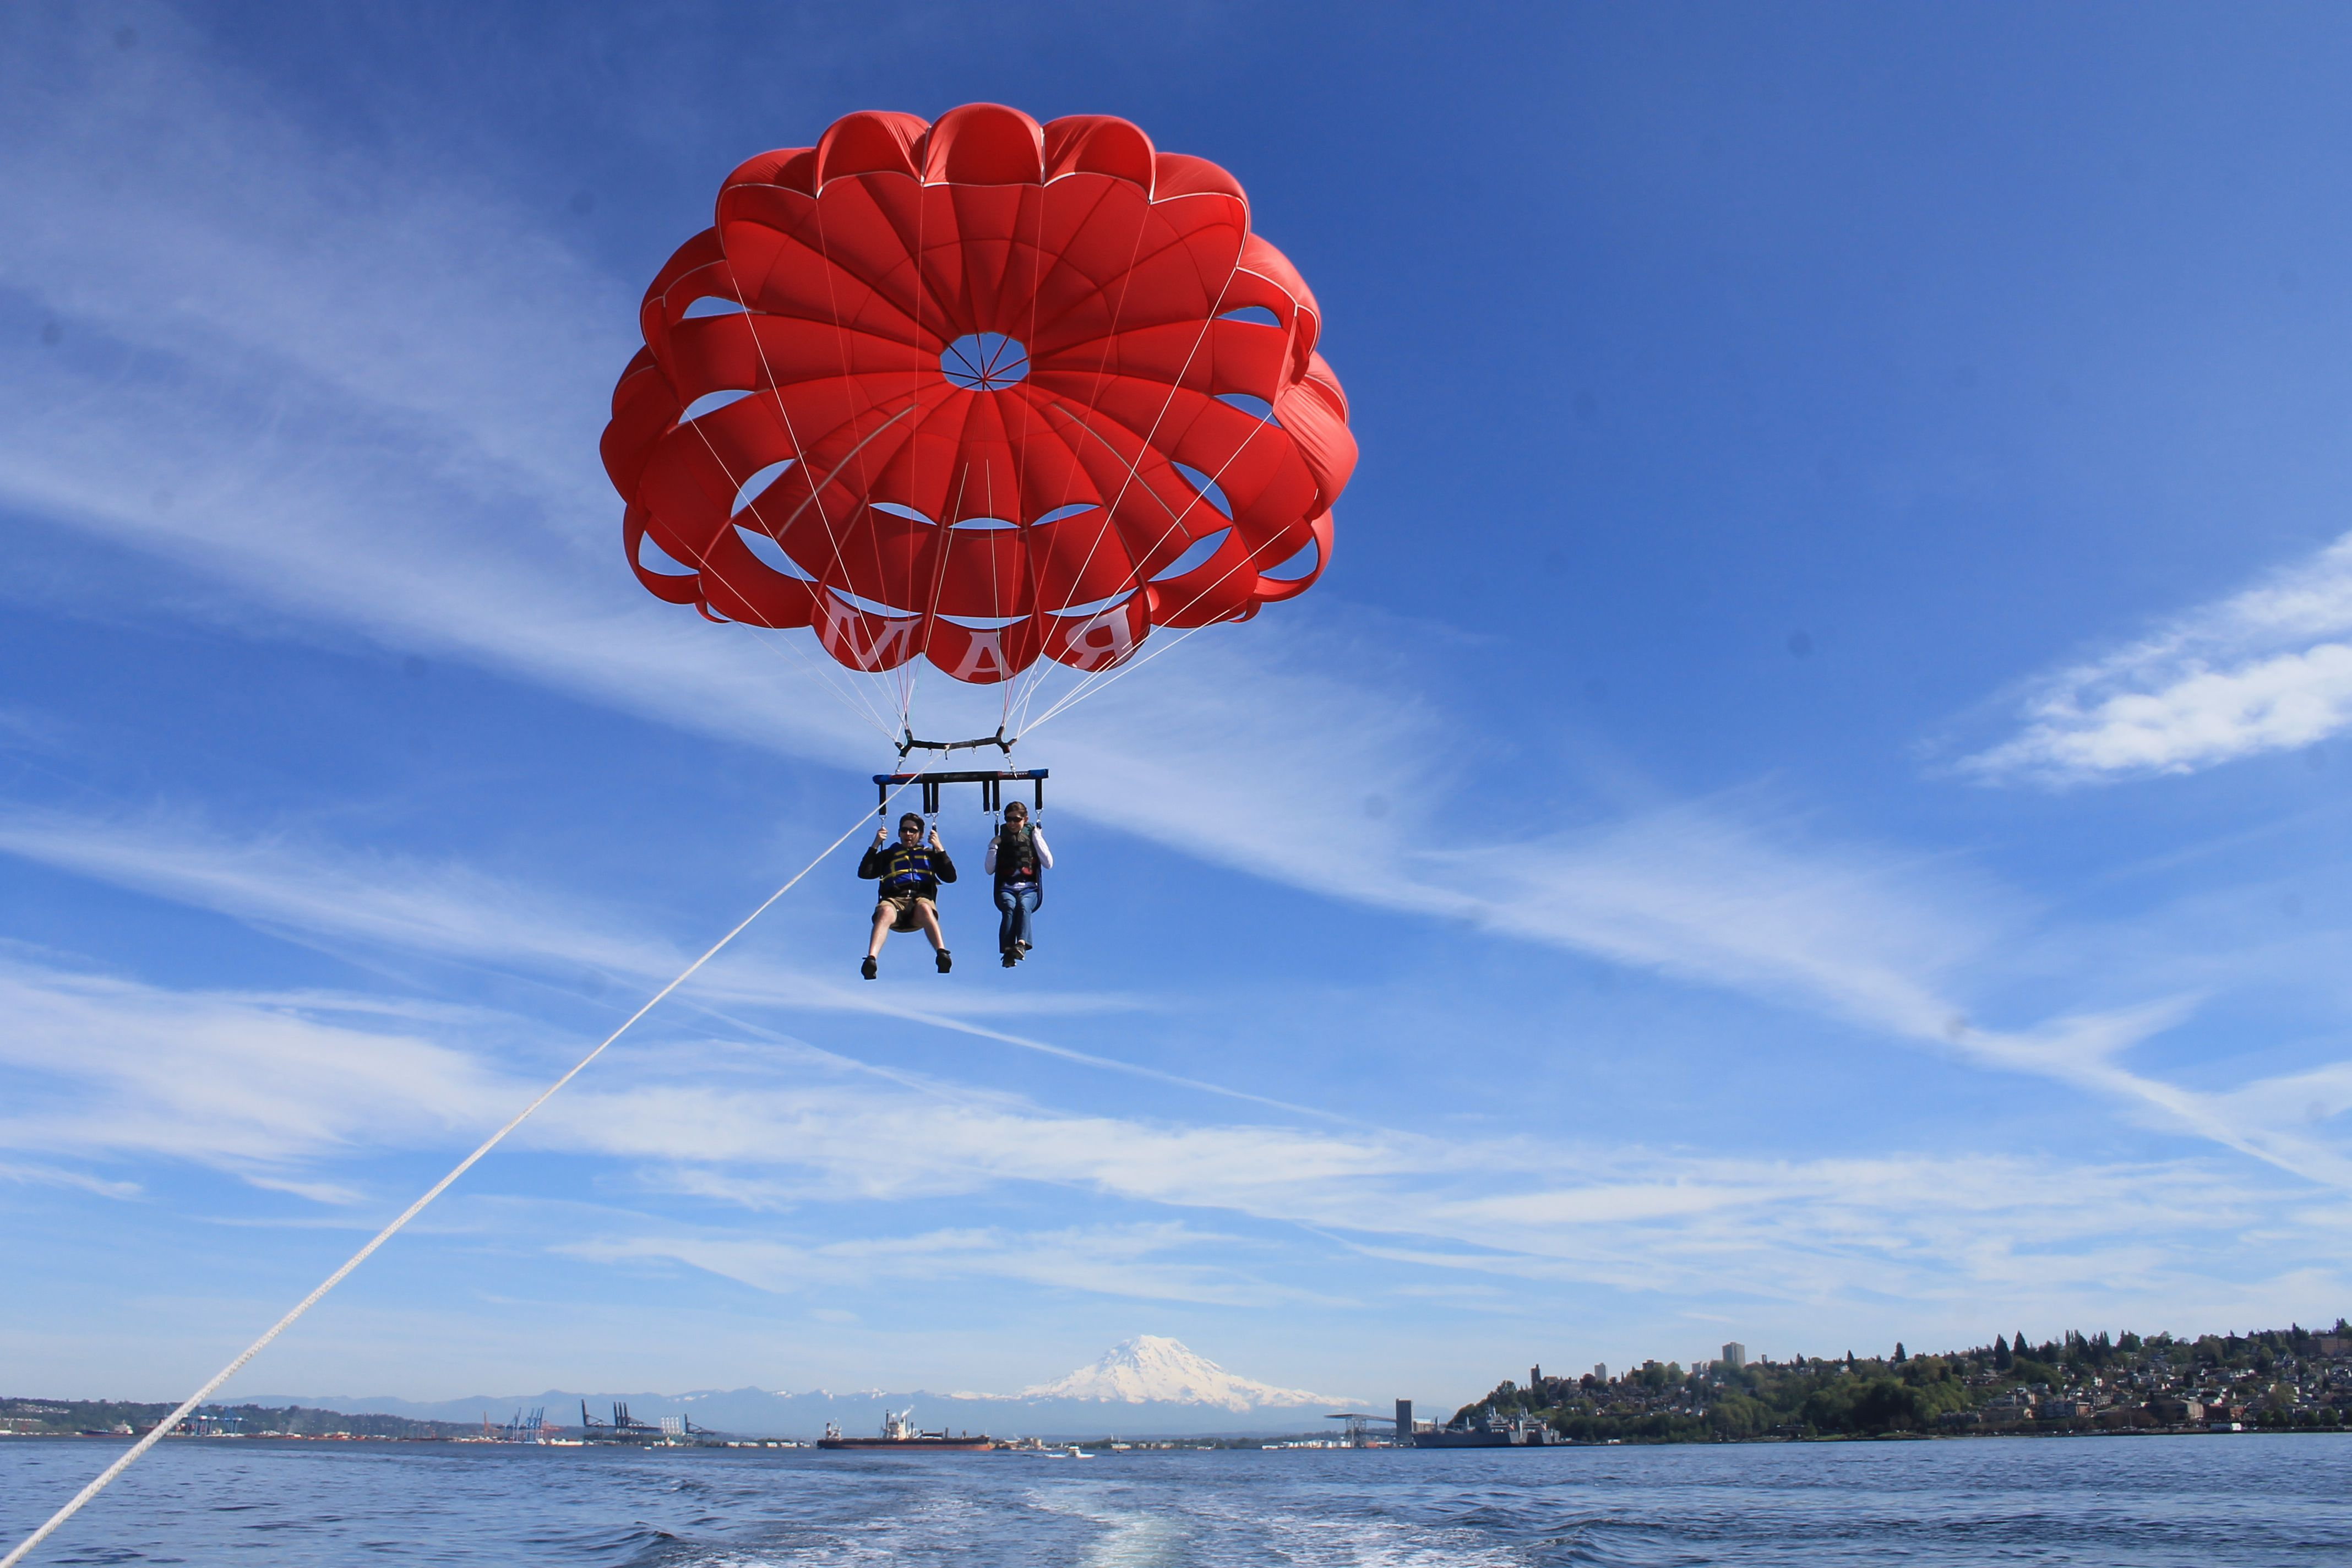 Where to go parasailing near Seattle and Tacoma